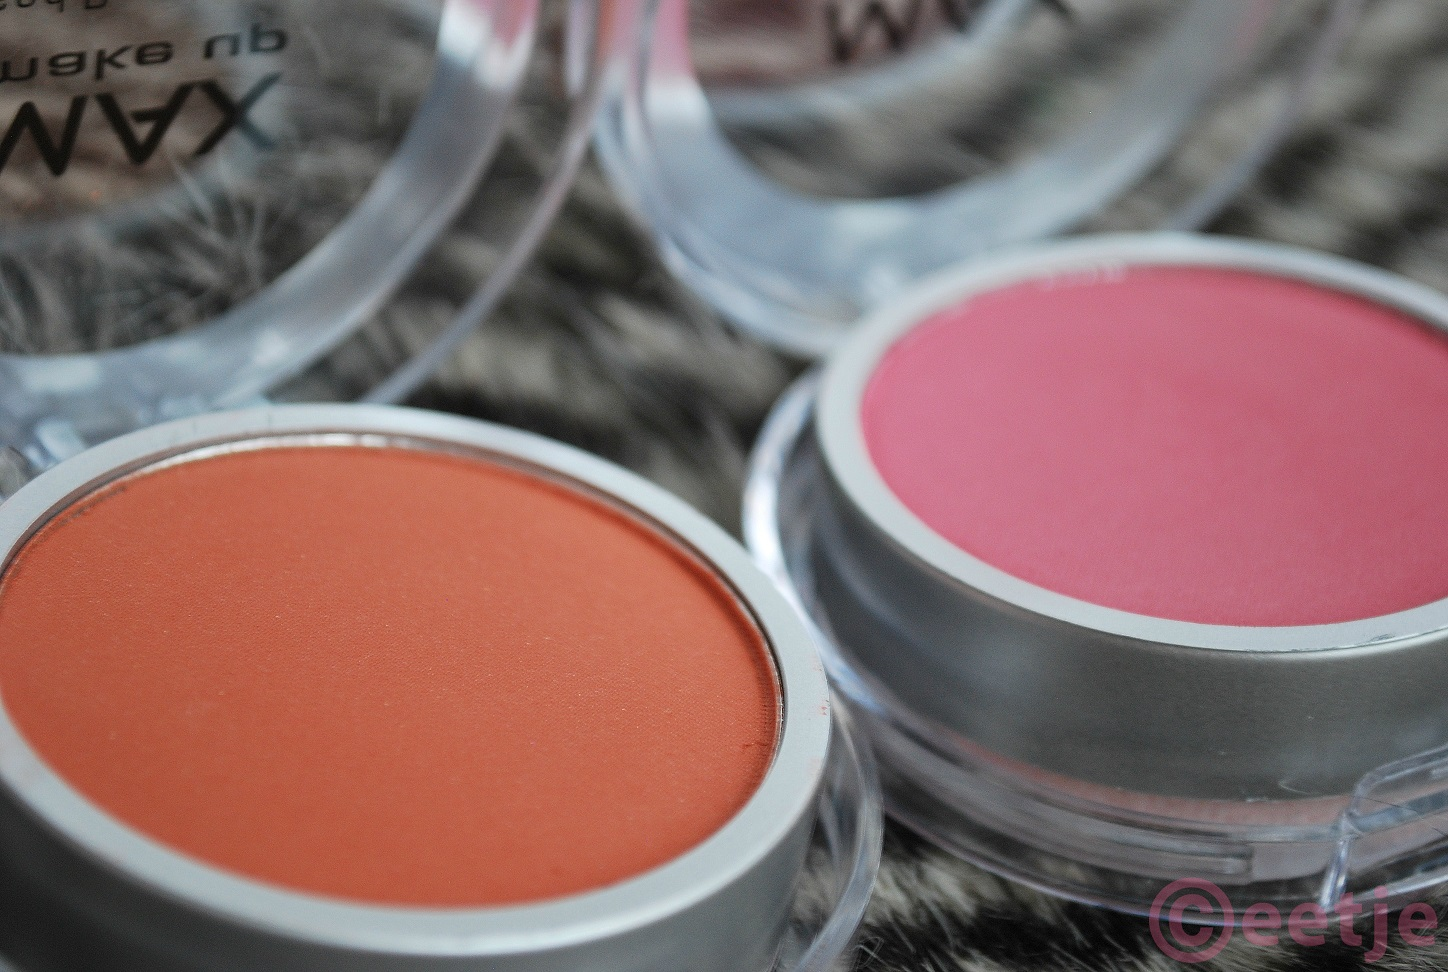 review Action Blush brown pressed powder